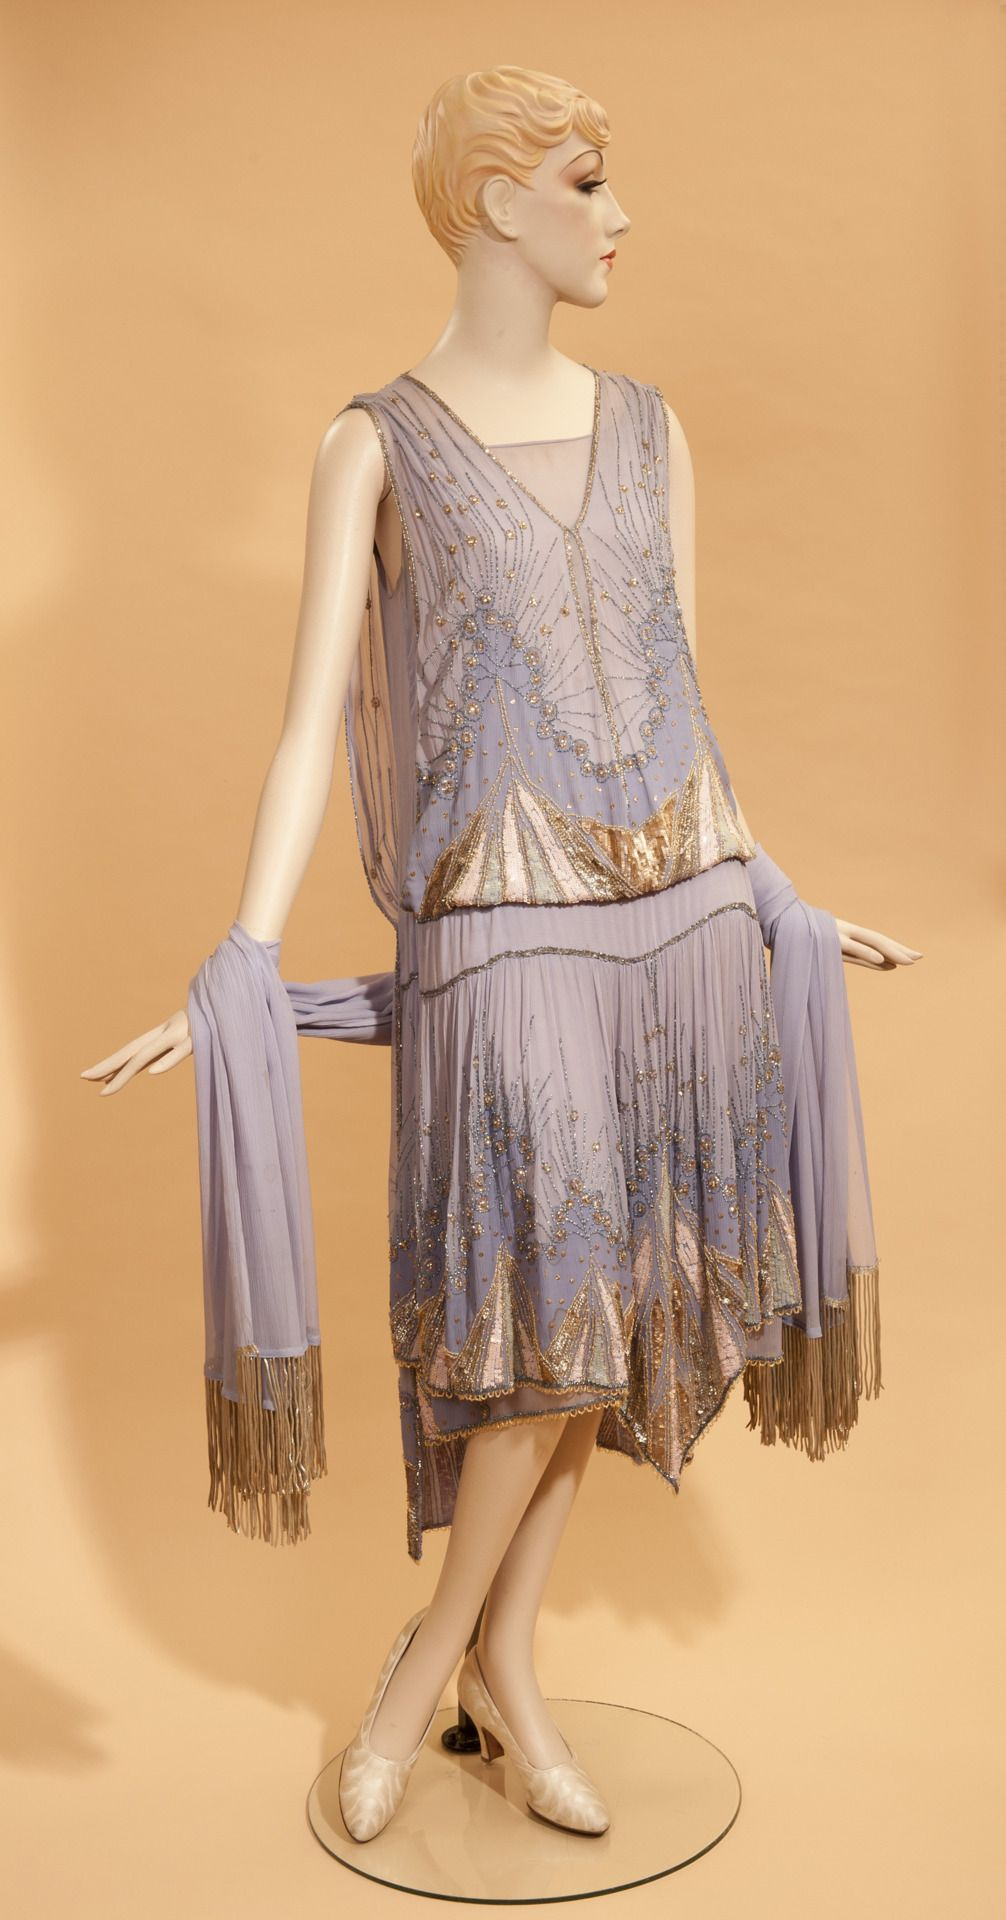 Evening dress, 1920s. Fashionable Art: Apparel from the 1920s and 1930s